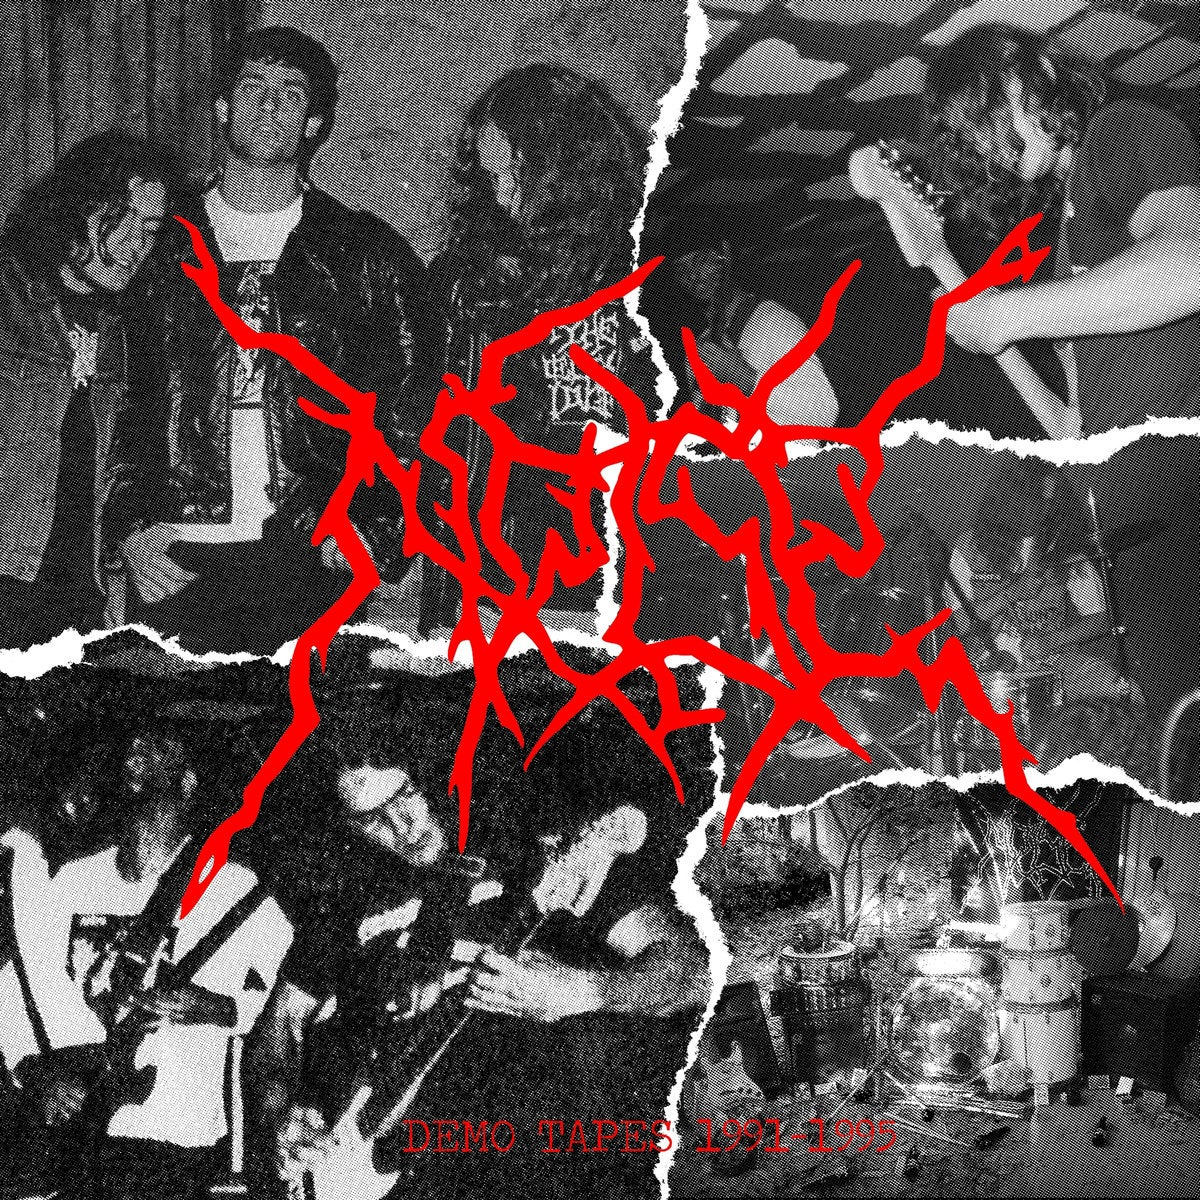 Noise - Demo Tapes 1991-1995 LP